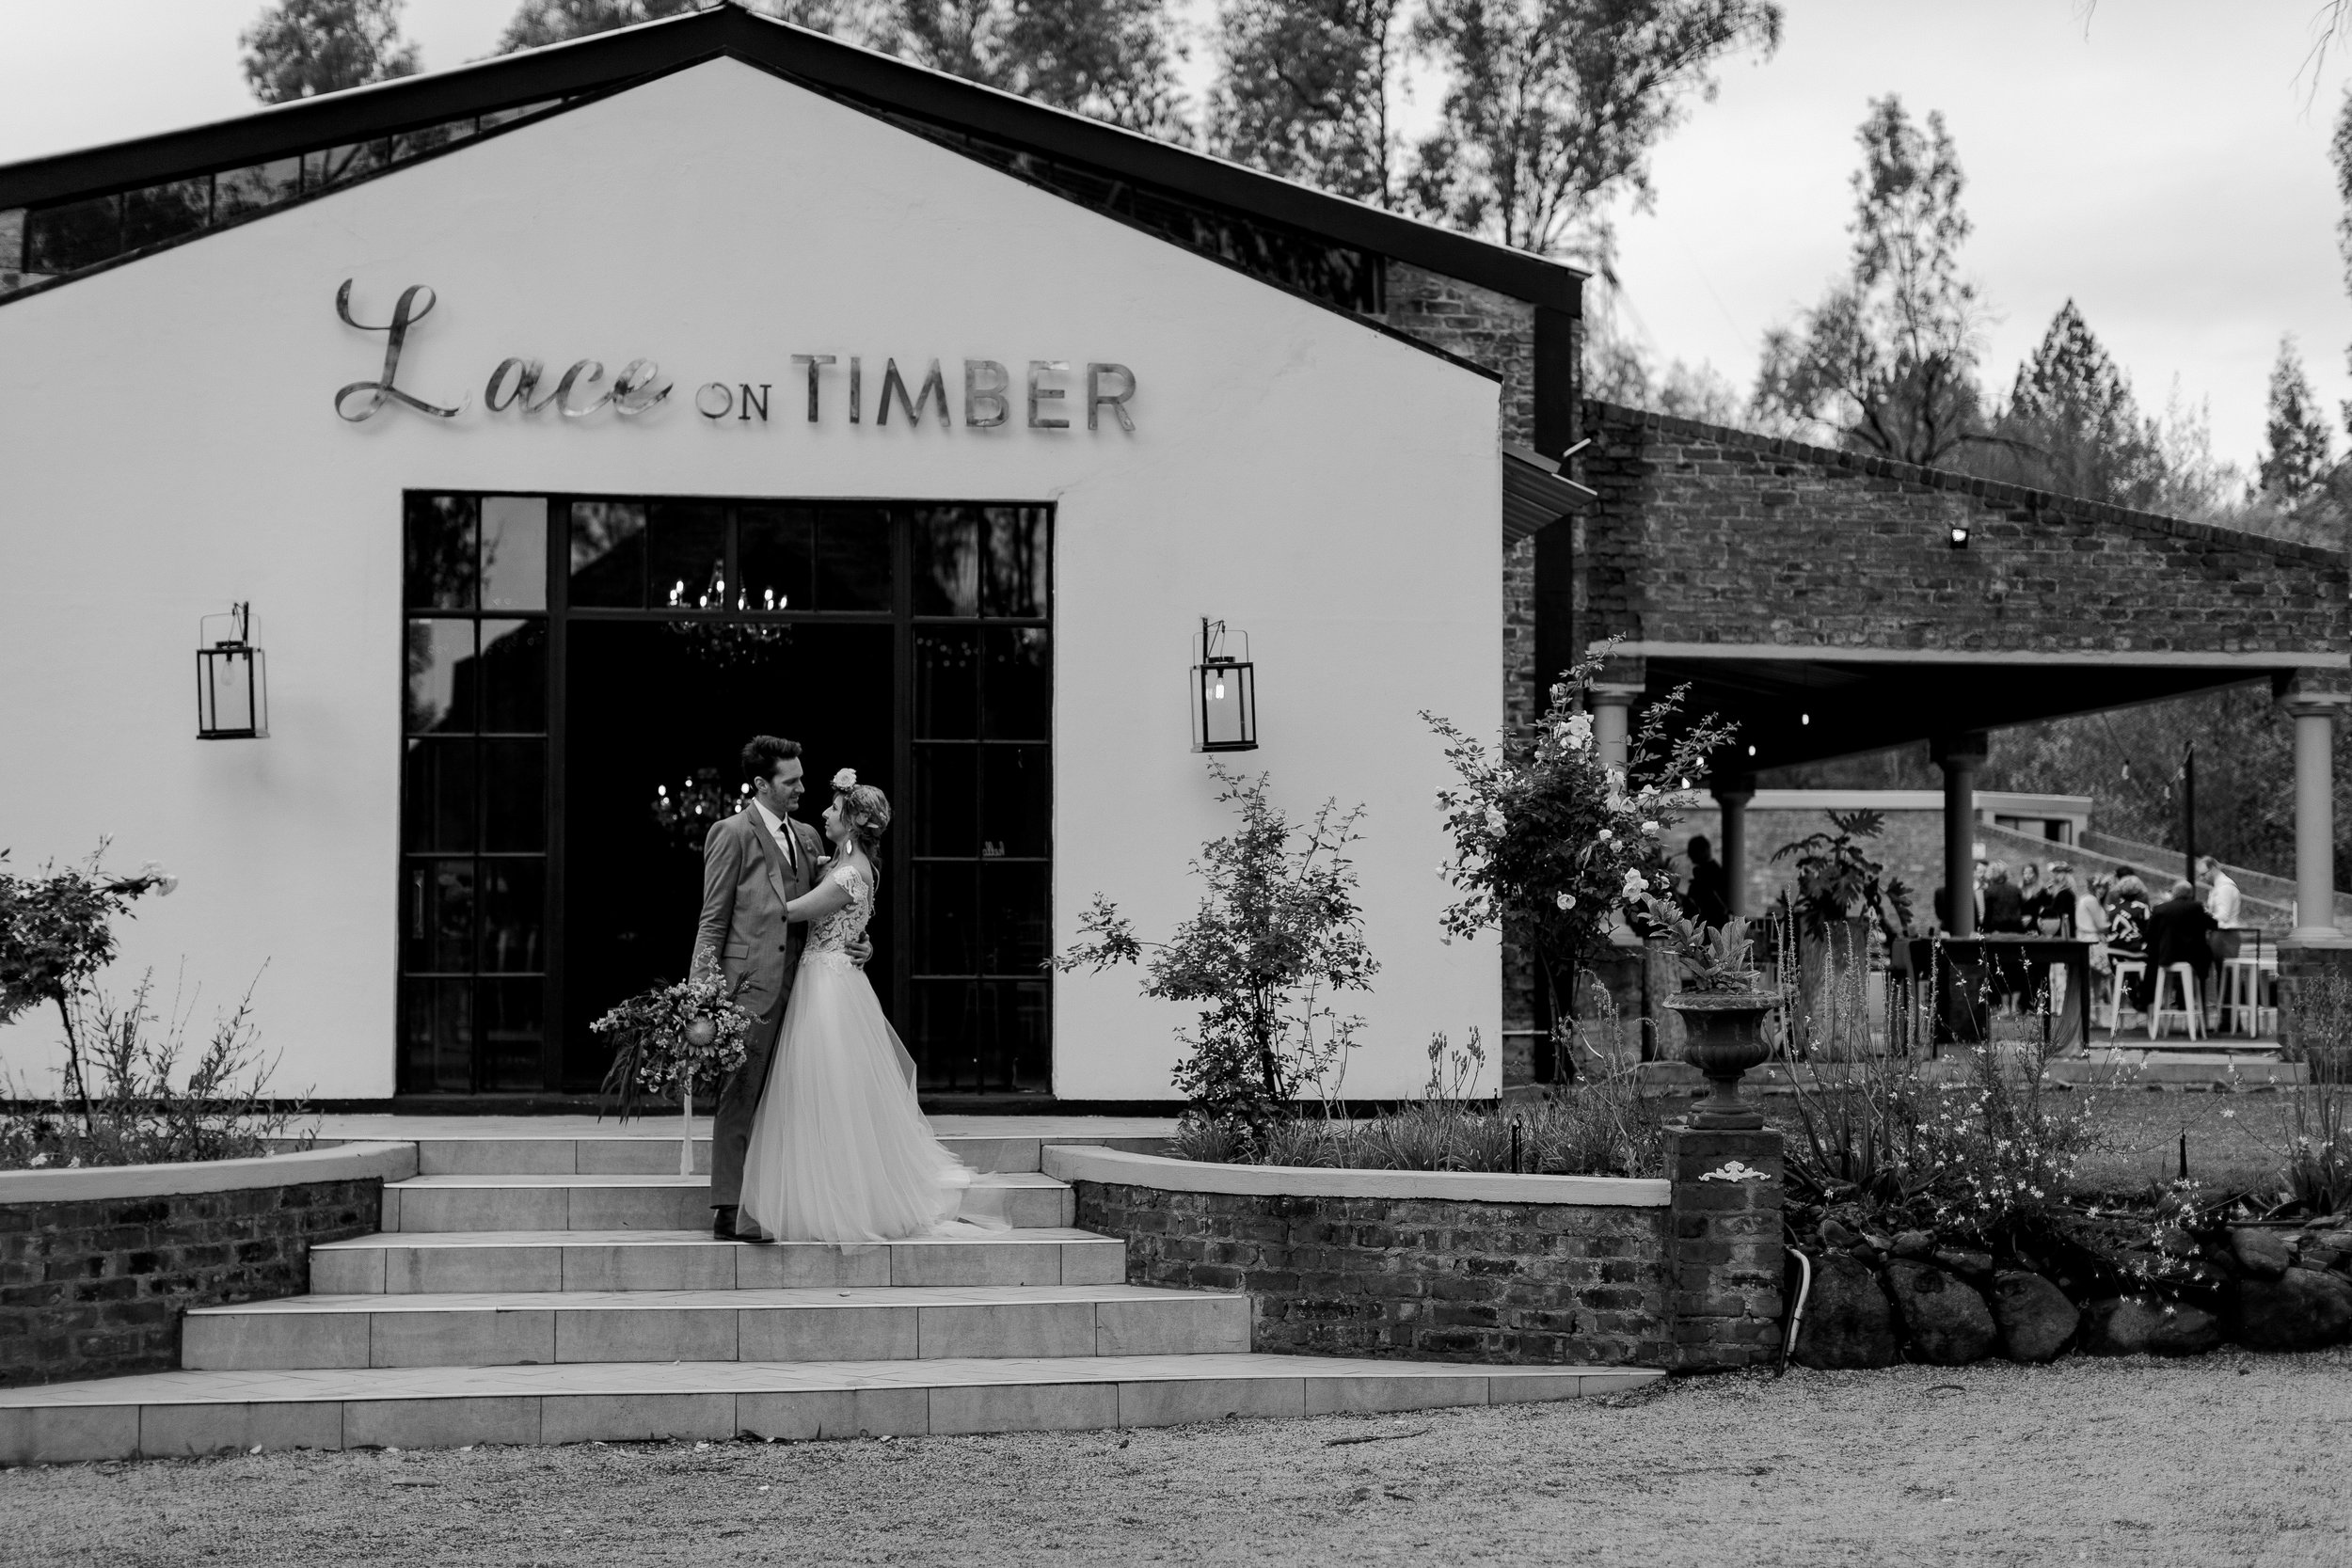 lace on timber wedding 2019049.JPG